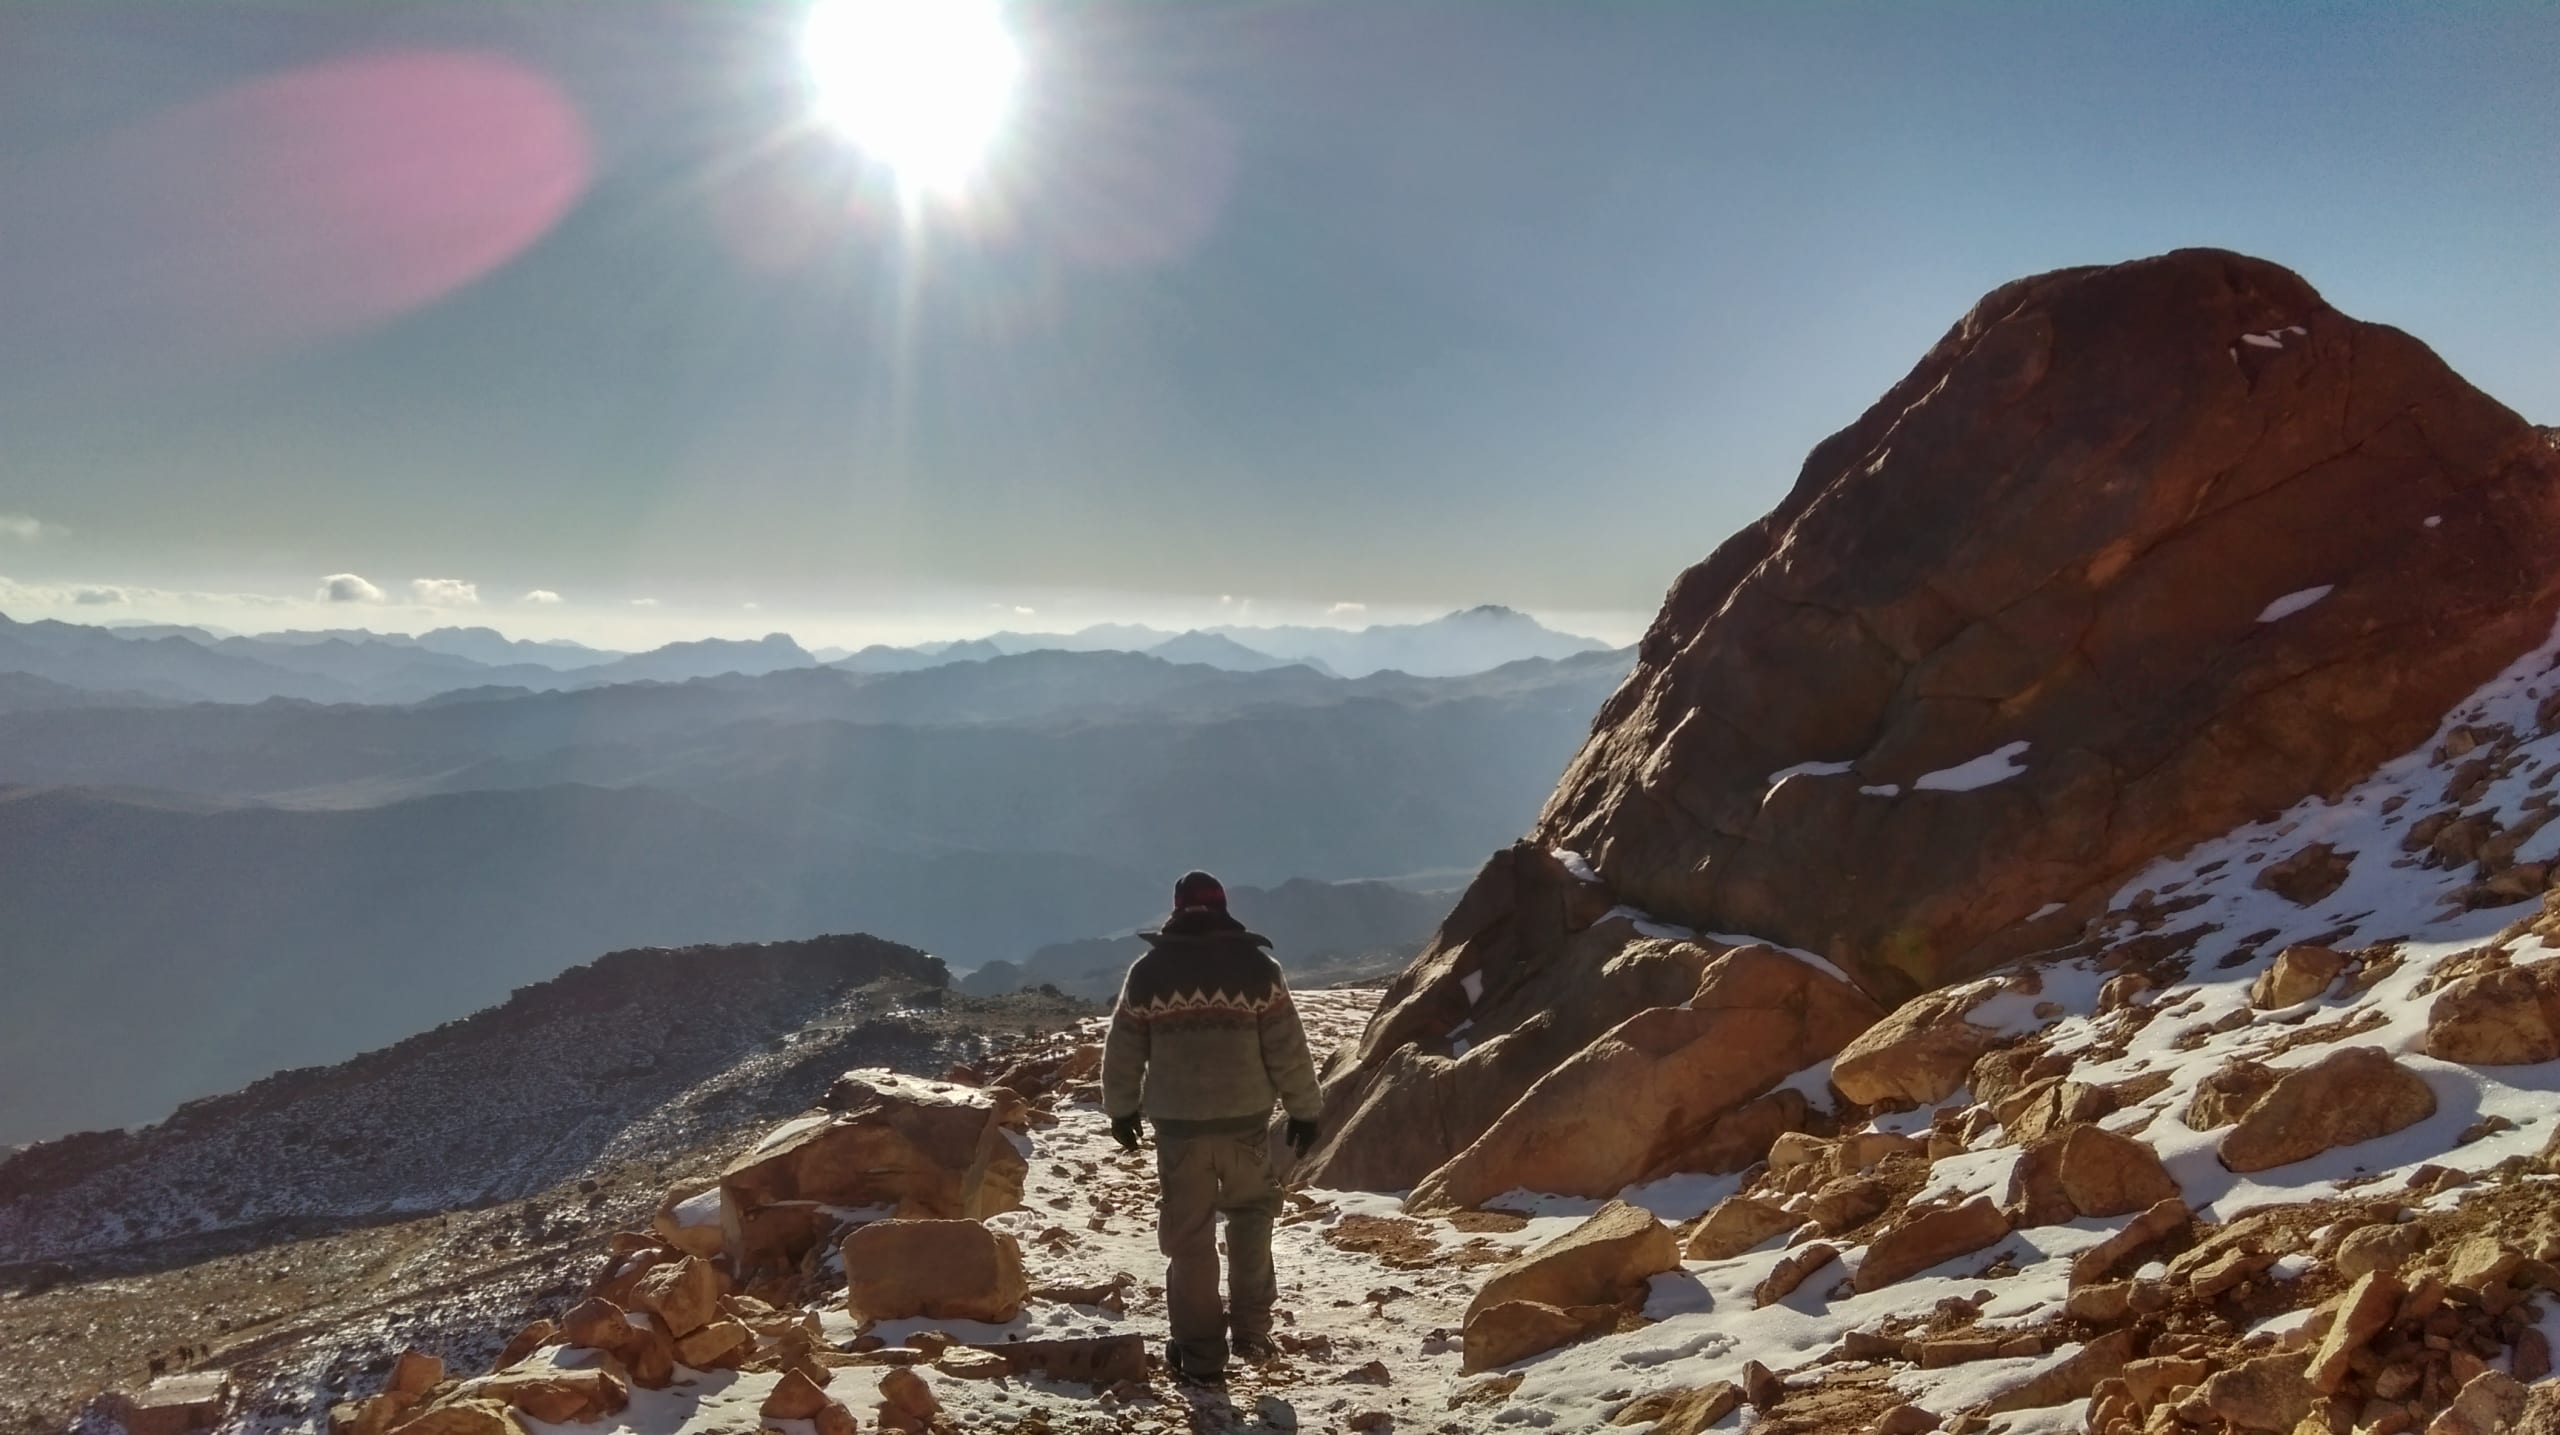 Hiking Mount Sinai Things To Know And What To Prepare